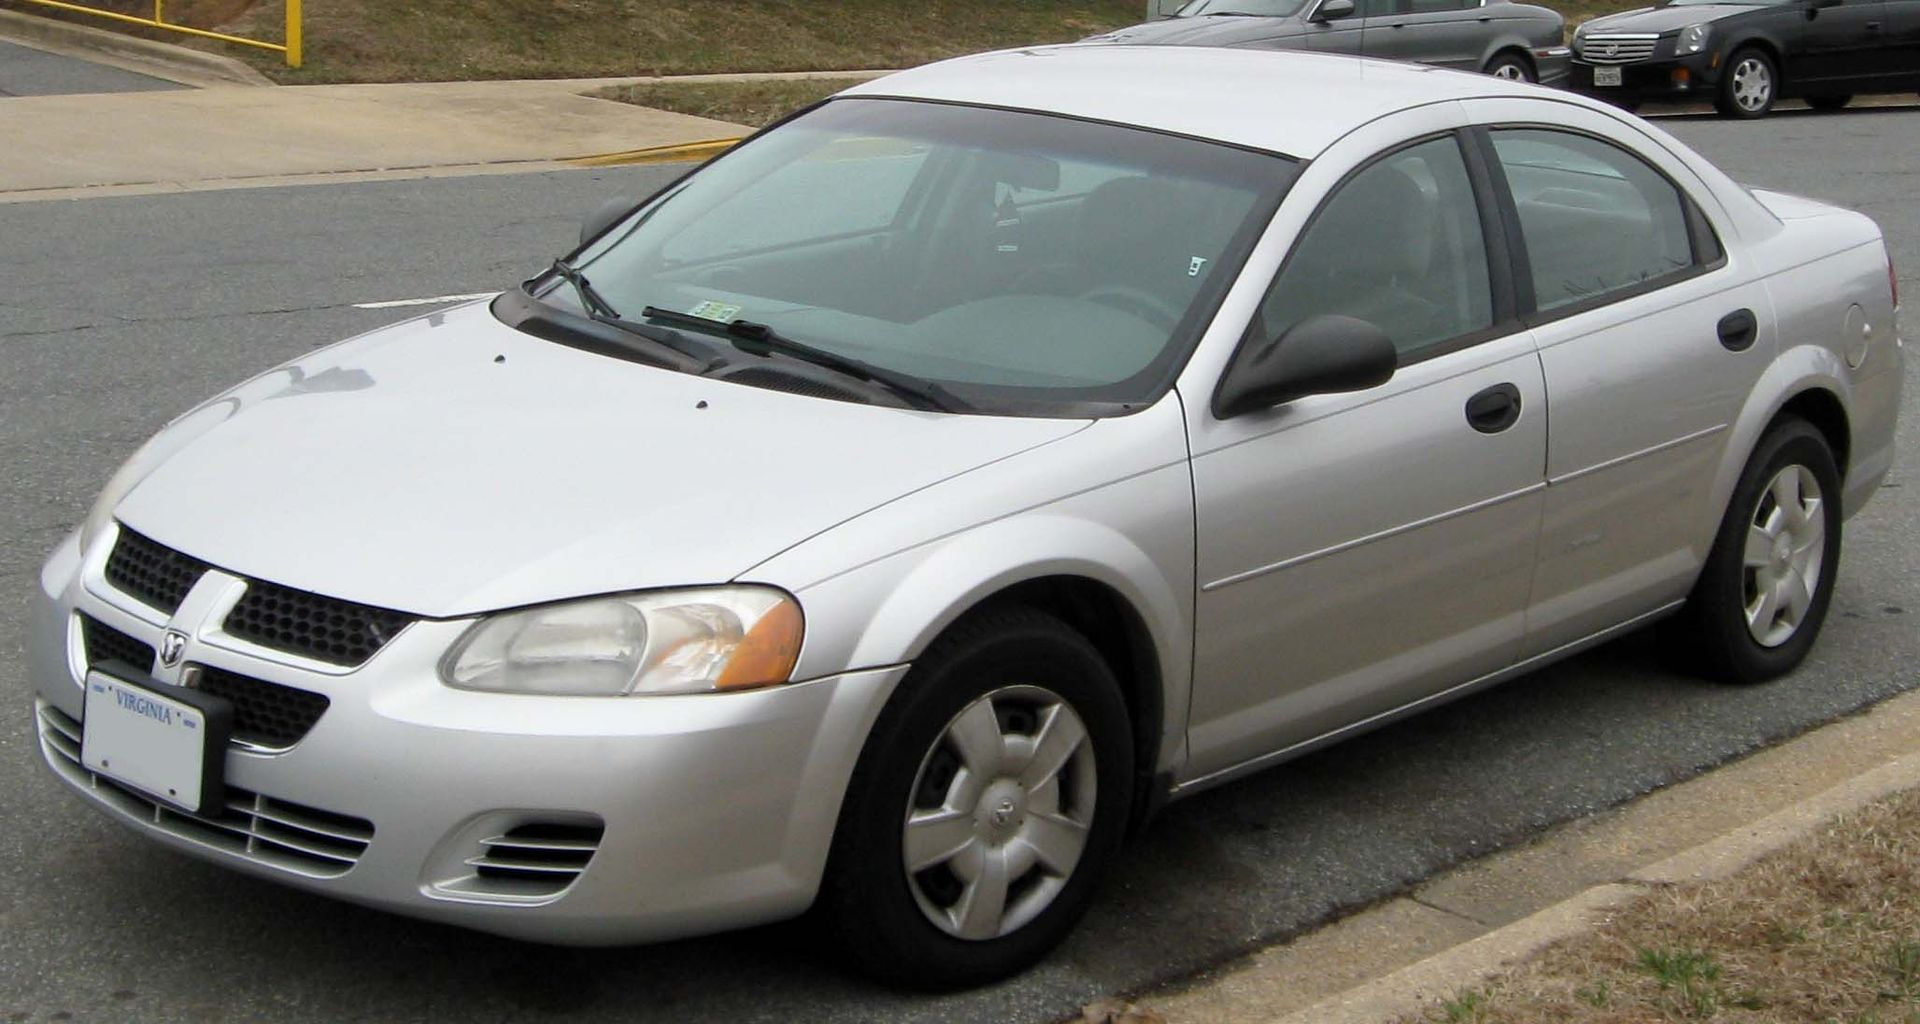 Px Dodge Stratus on 2001 Chrysler Sebring Convertible